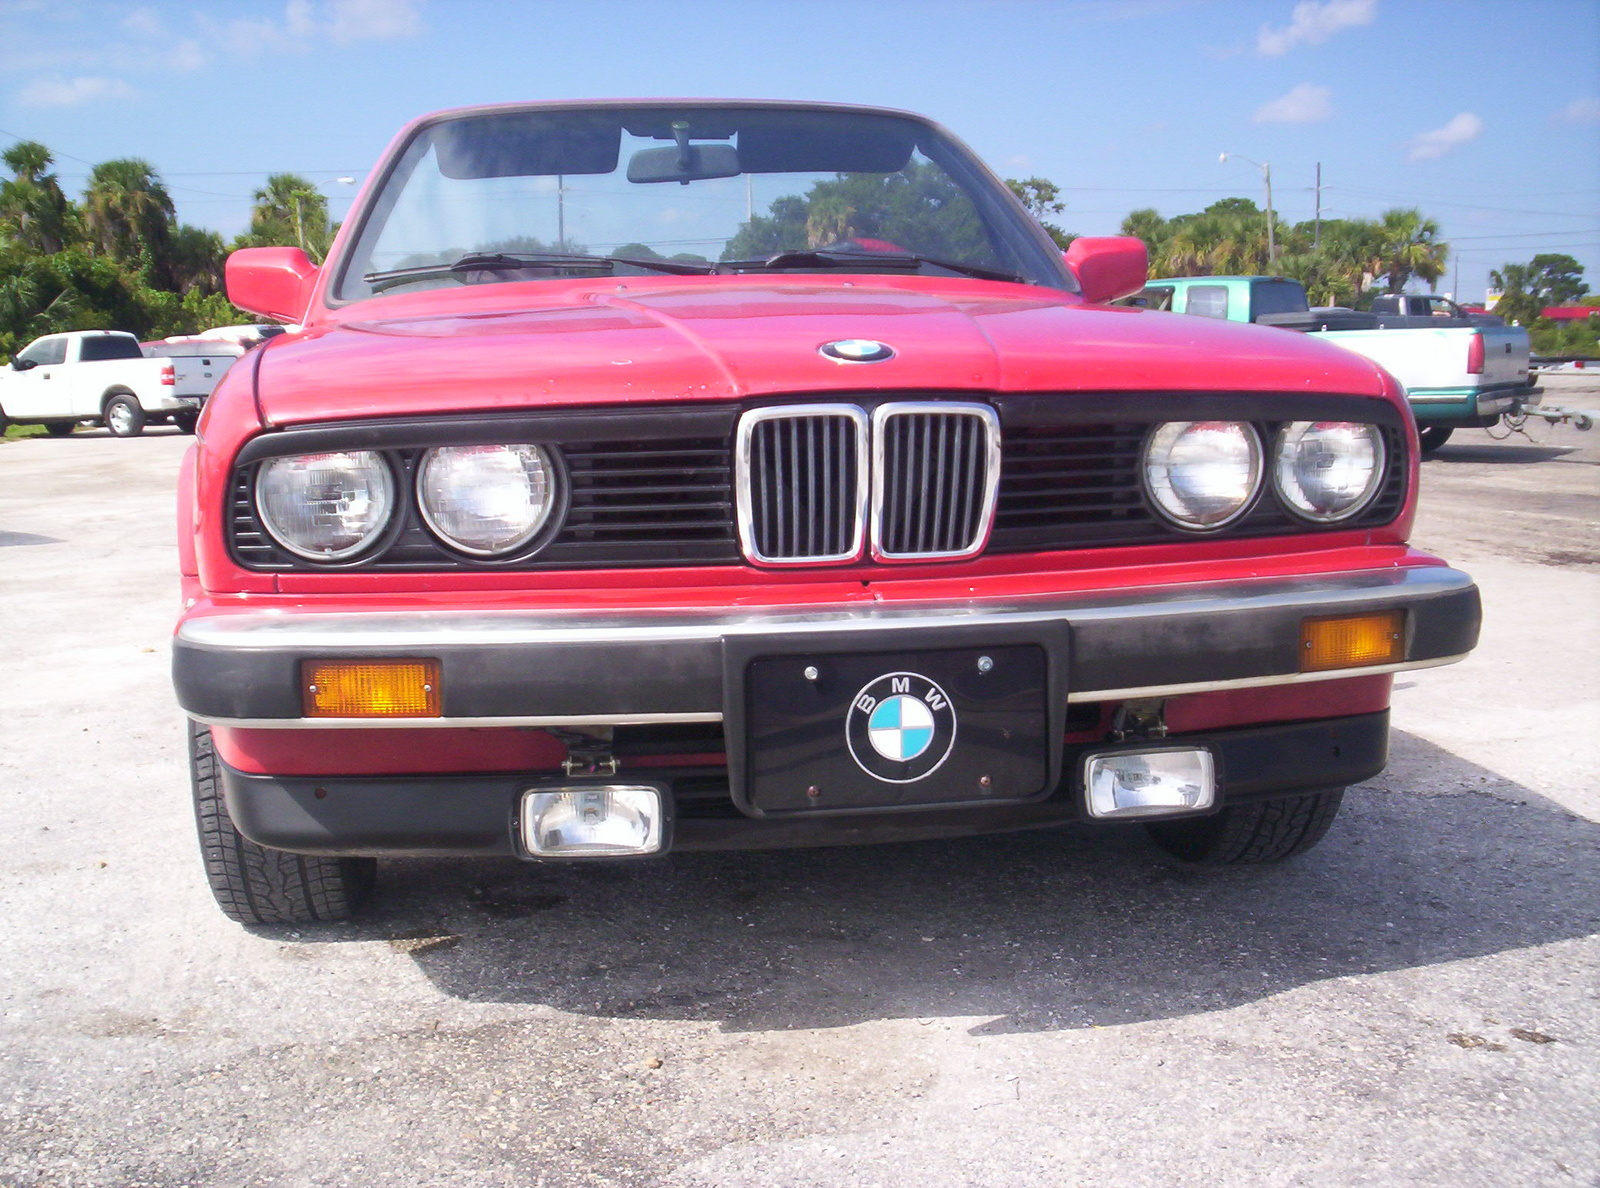 BMW 3 series 325 1987 photo - 3